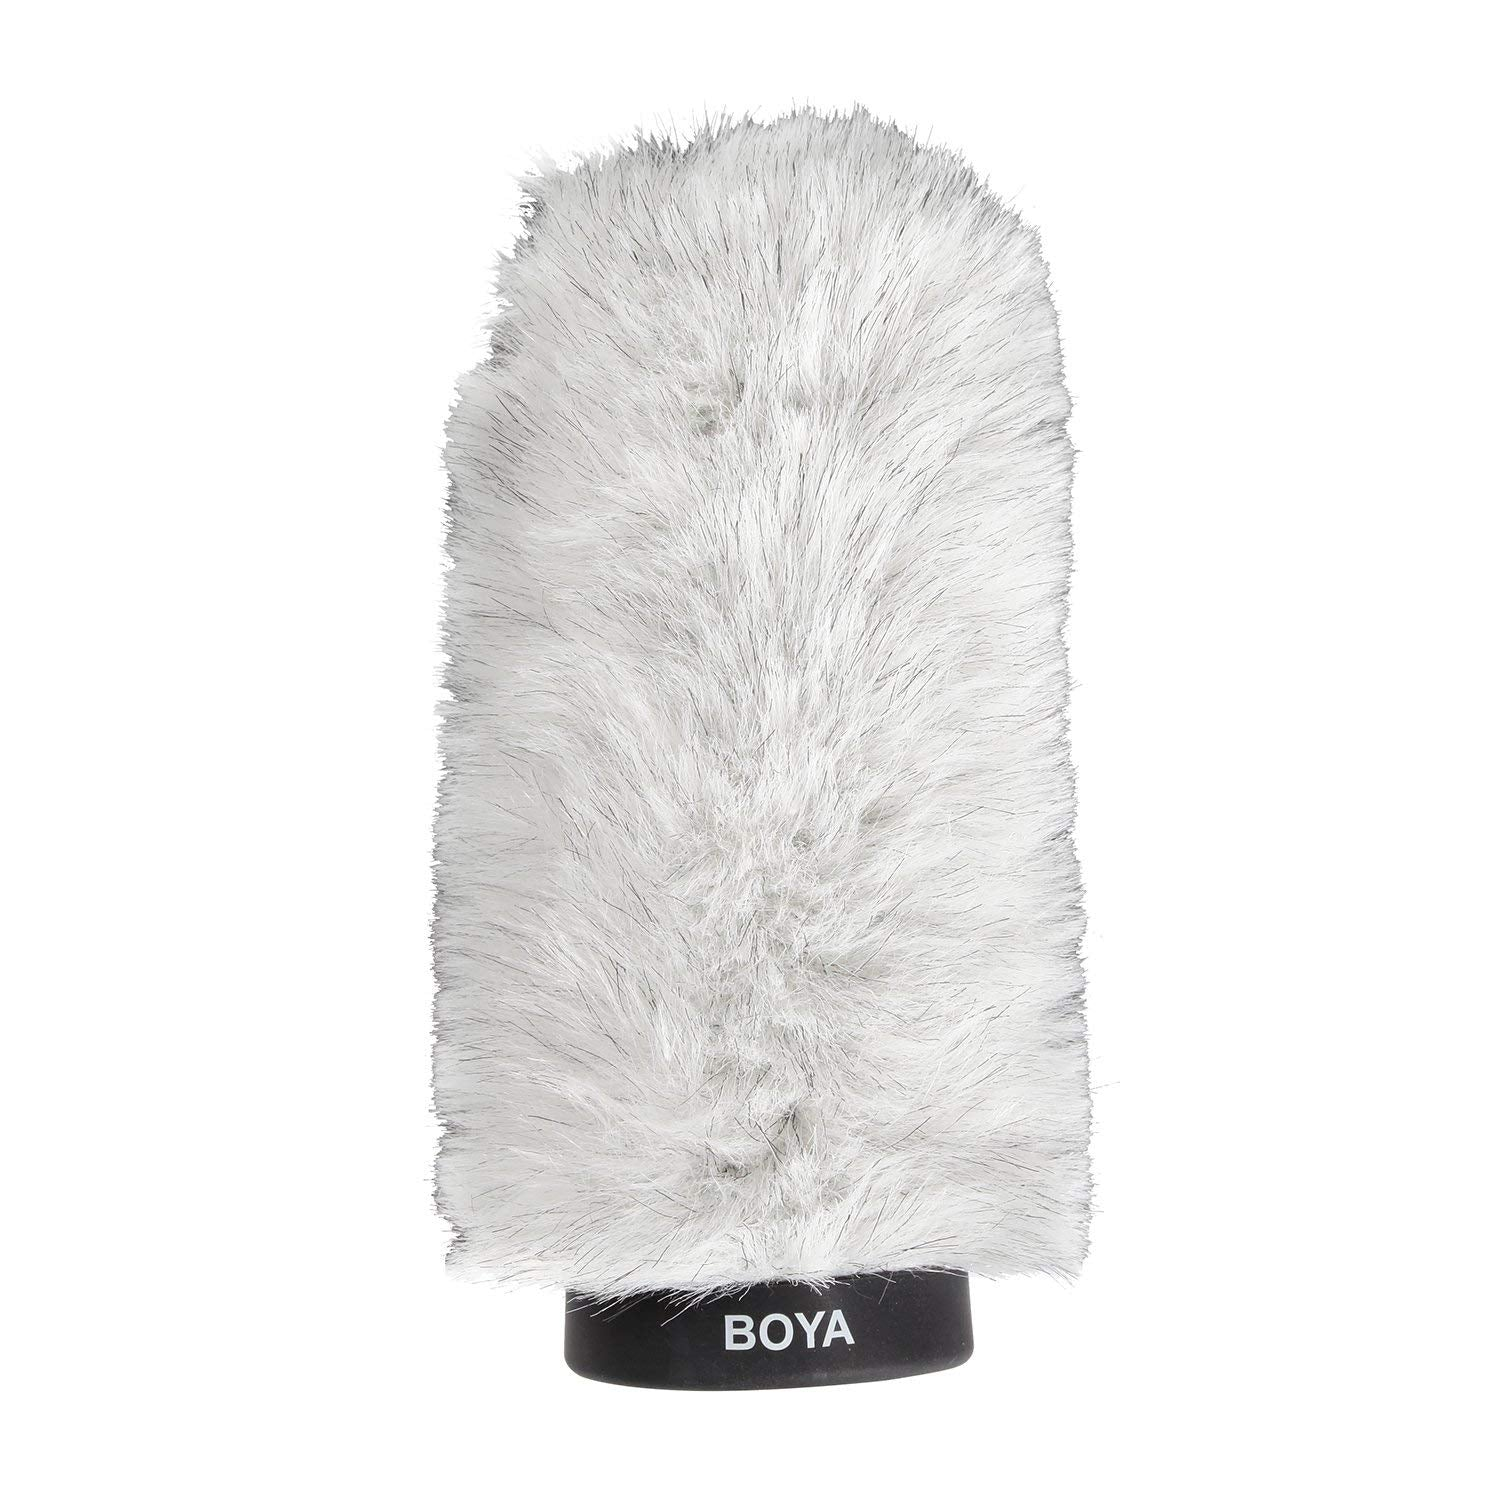 BOYA BY-P180 Furry Outdoor Interview Windshield Muff for Shotgun Capacitor Microphones (Inside Depth 7.2)